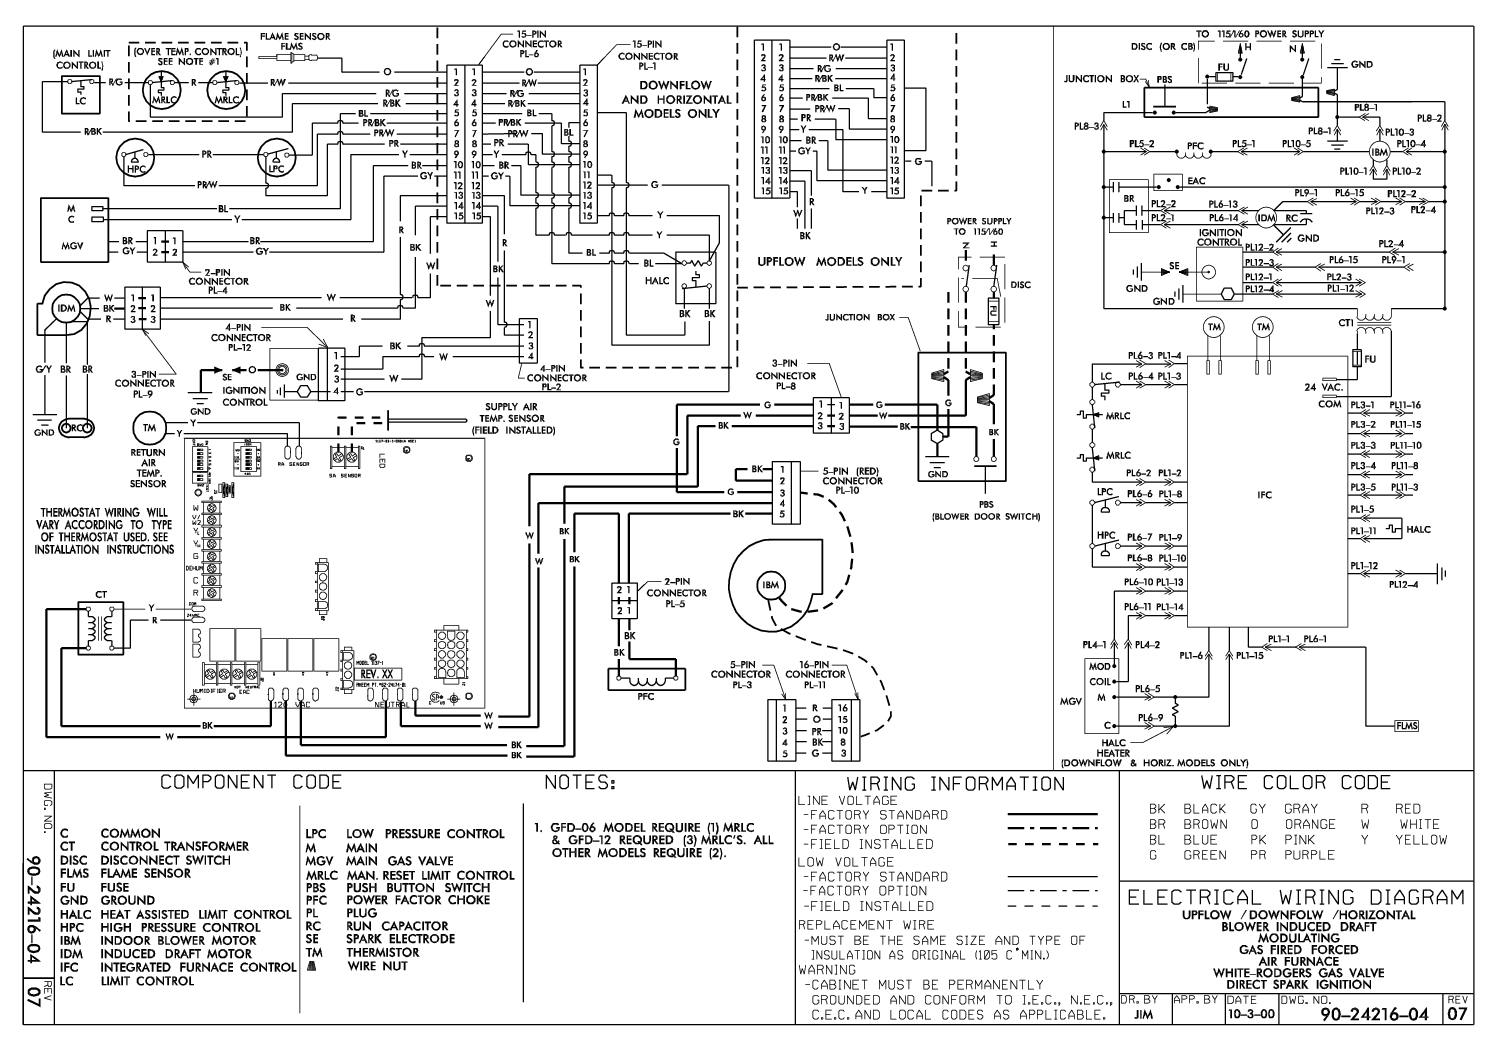 Trane 2 Stage Heat Pump Wiring Diagram from static-resources.imageservice.cloud